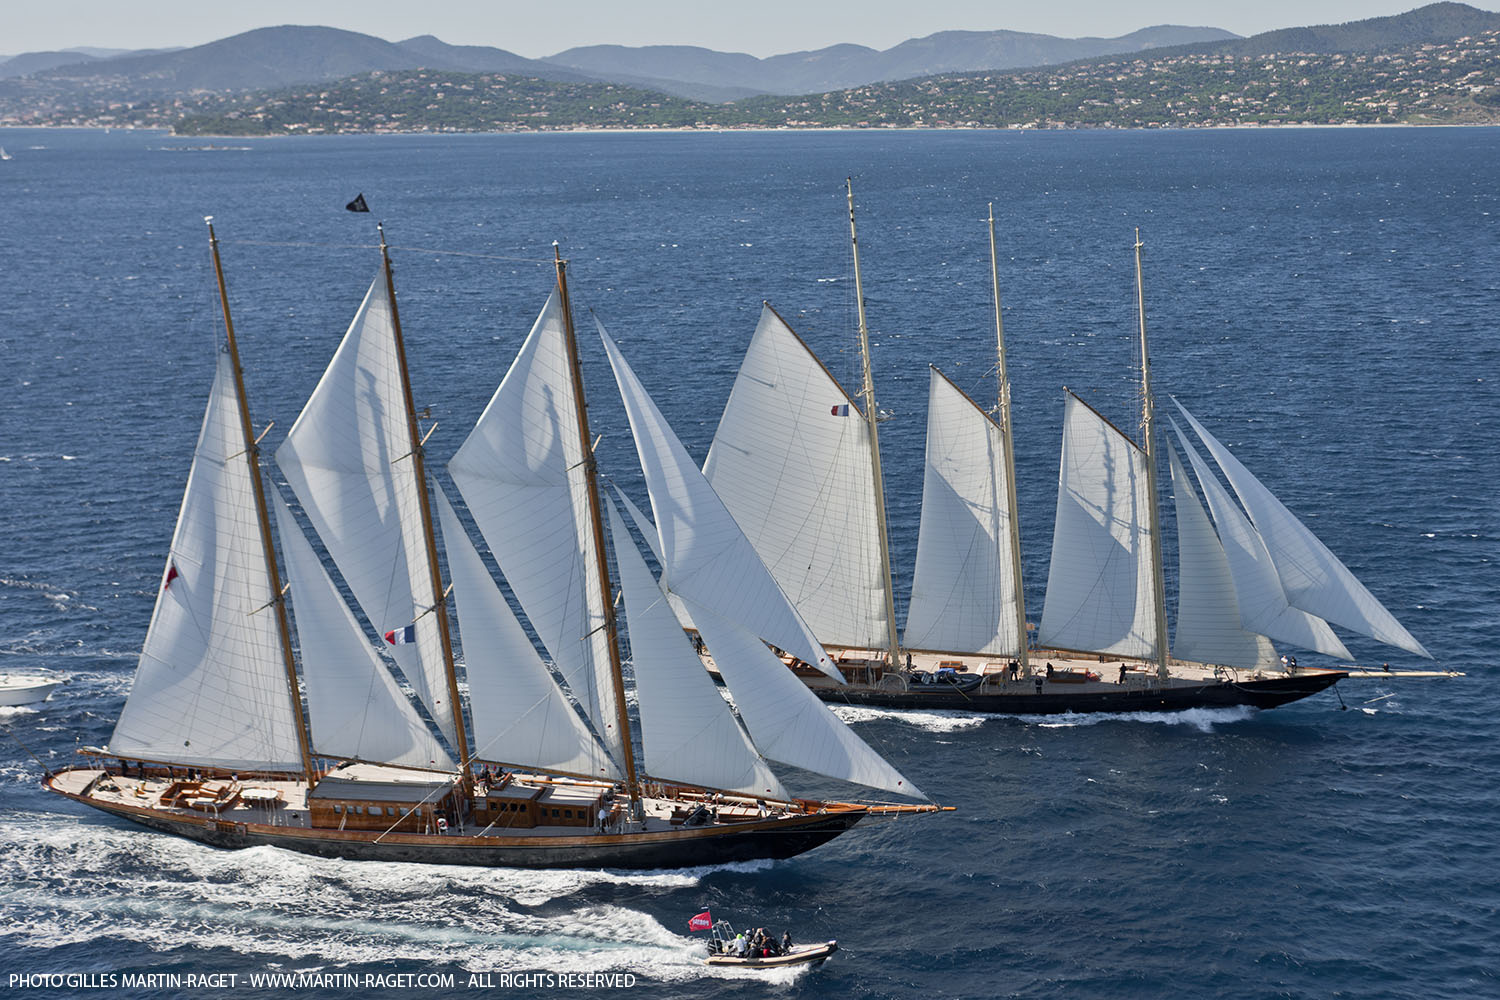 The grande finale of the yachting season – certainly for the classic yachts ...